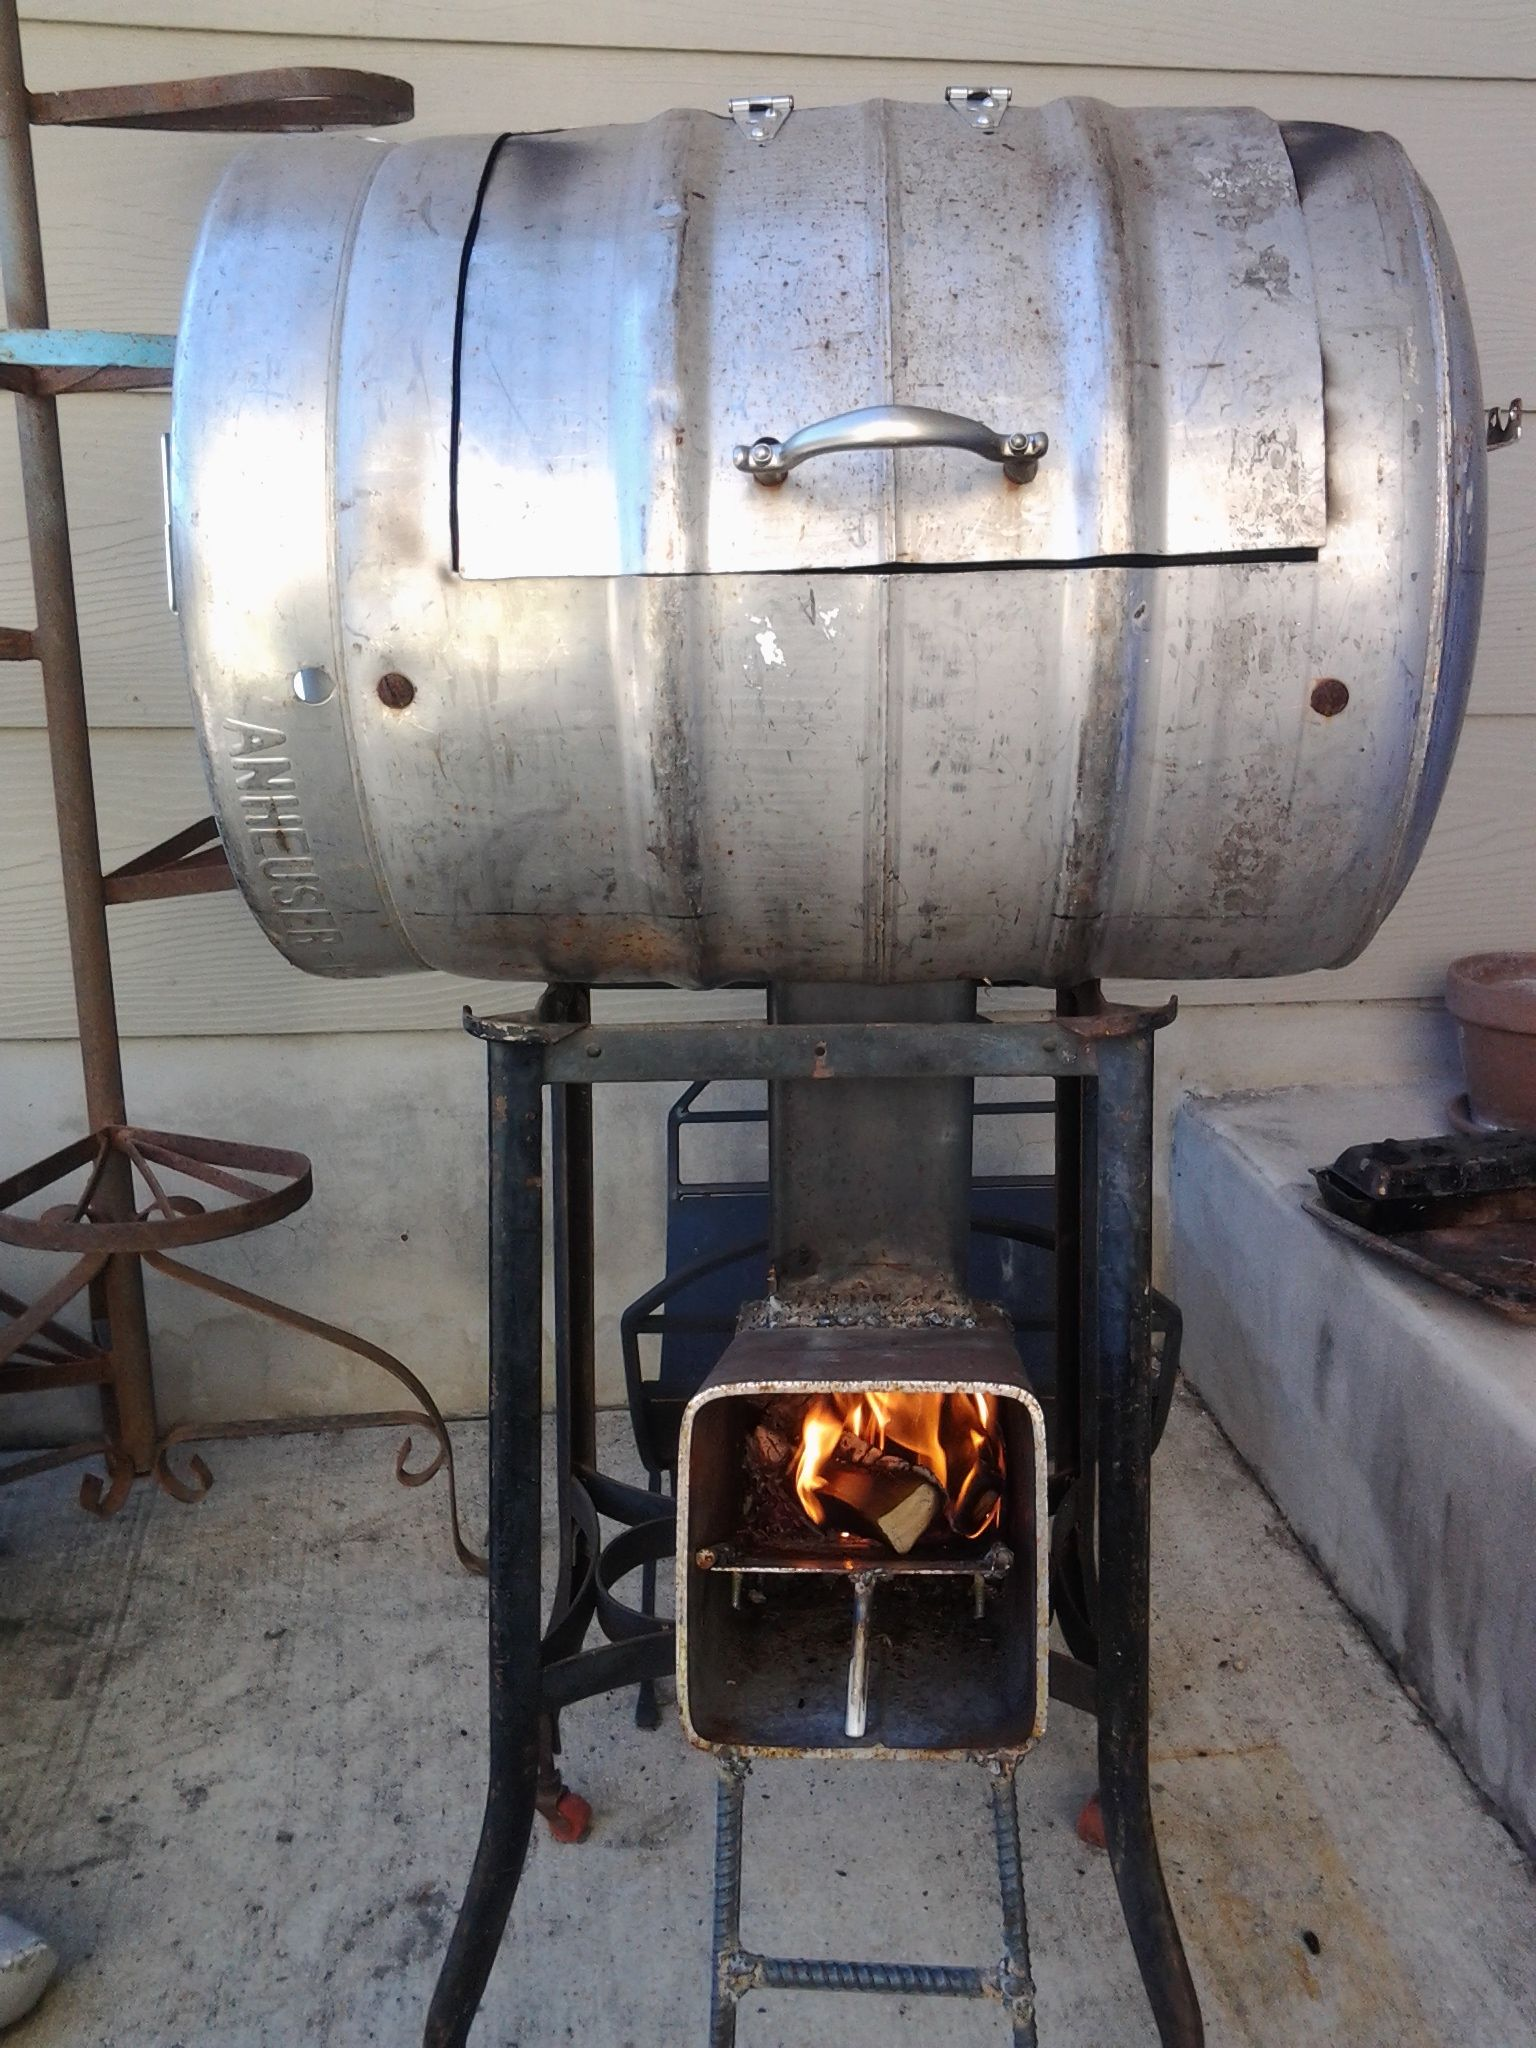 Beer Keg Turn Into Bbq With A Hole In The Bottom Through